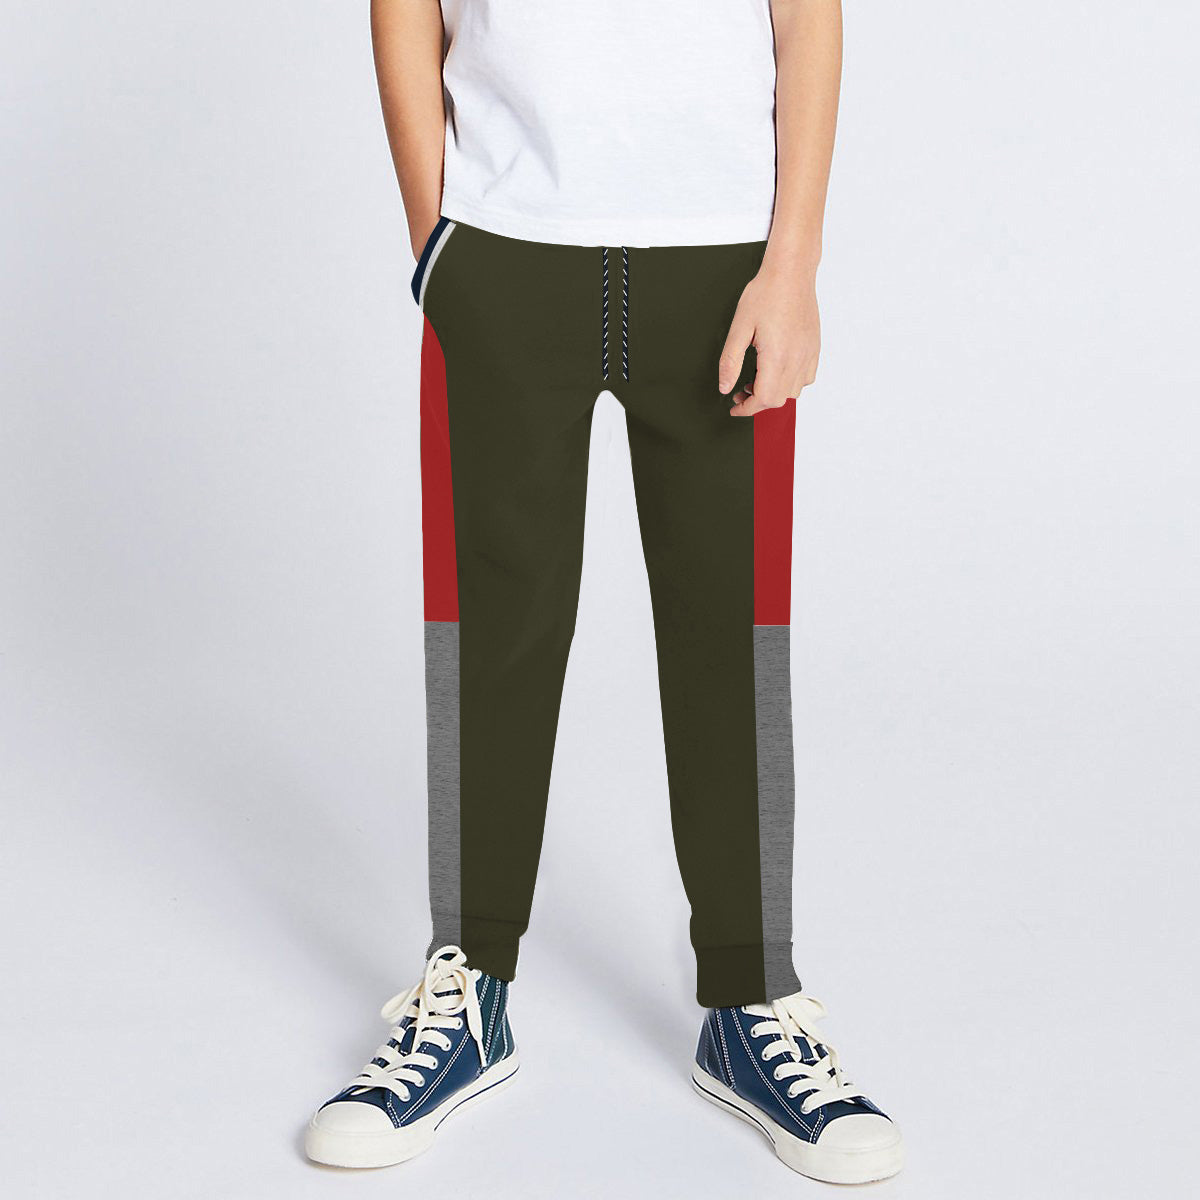 Next Slim Fit Jogger Trouser For Kids-Olive with Red & Grey Melange Panels-SP2683